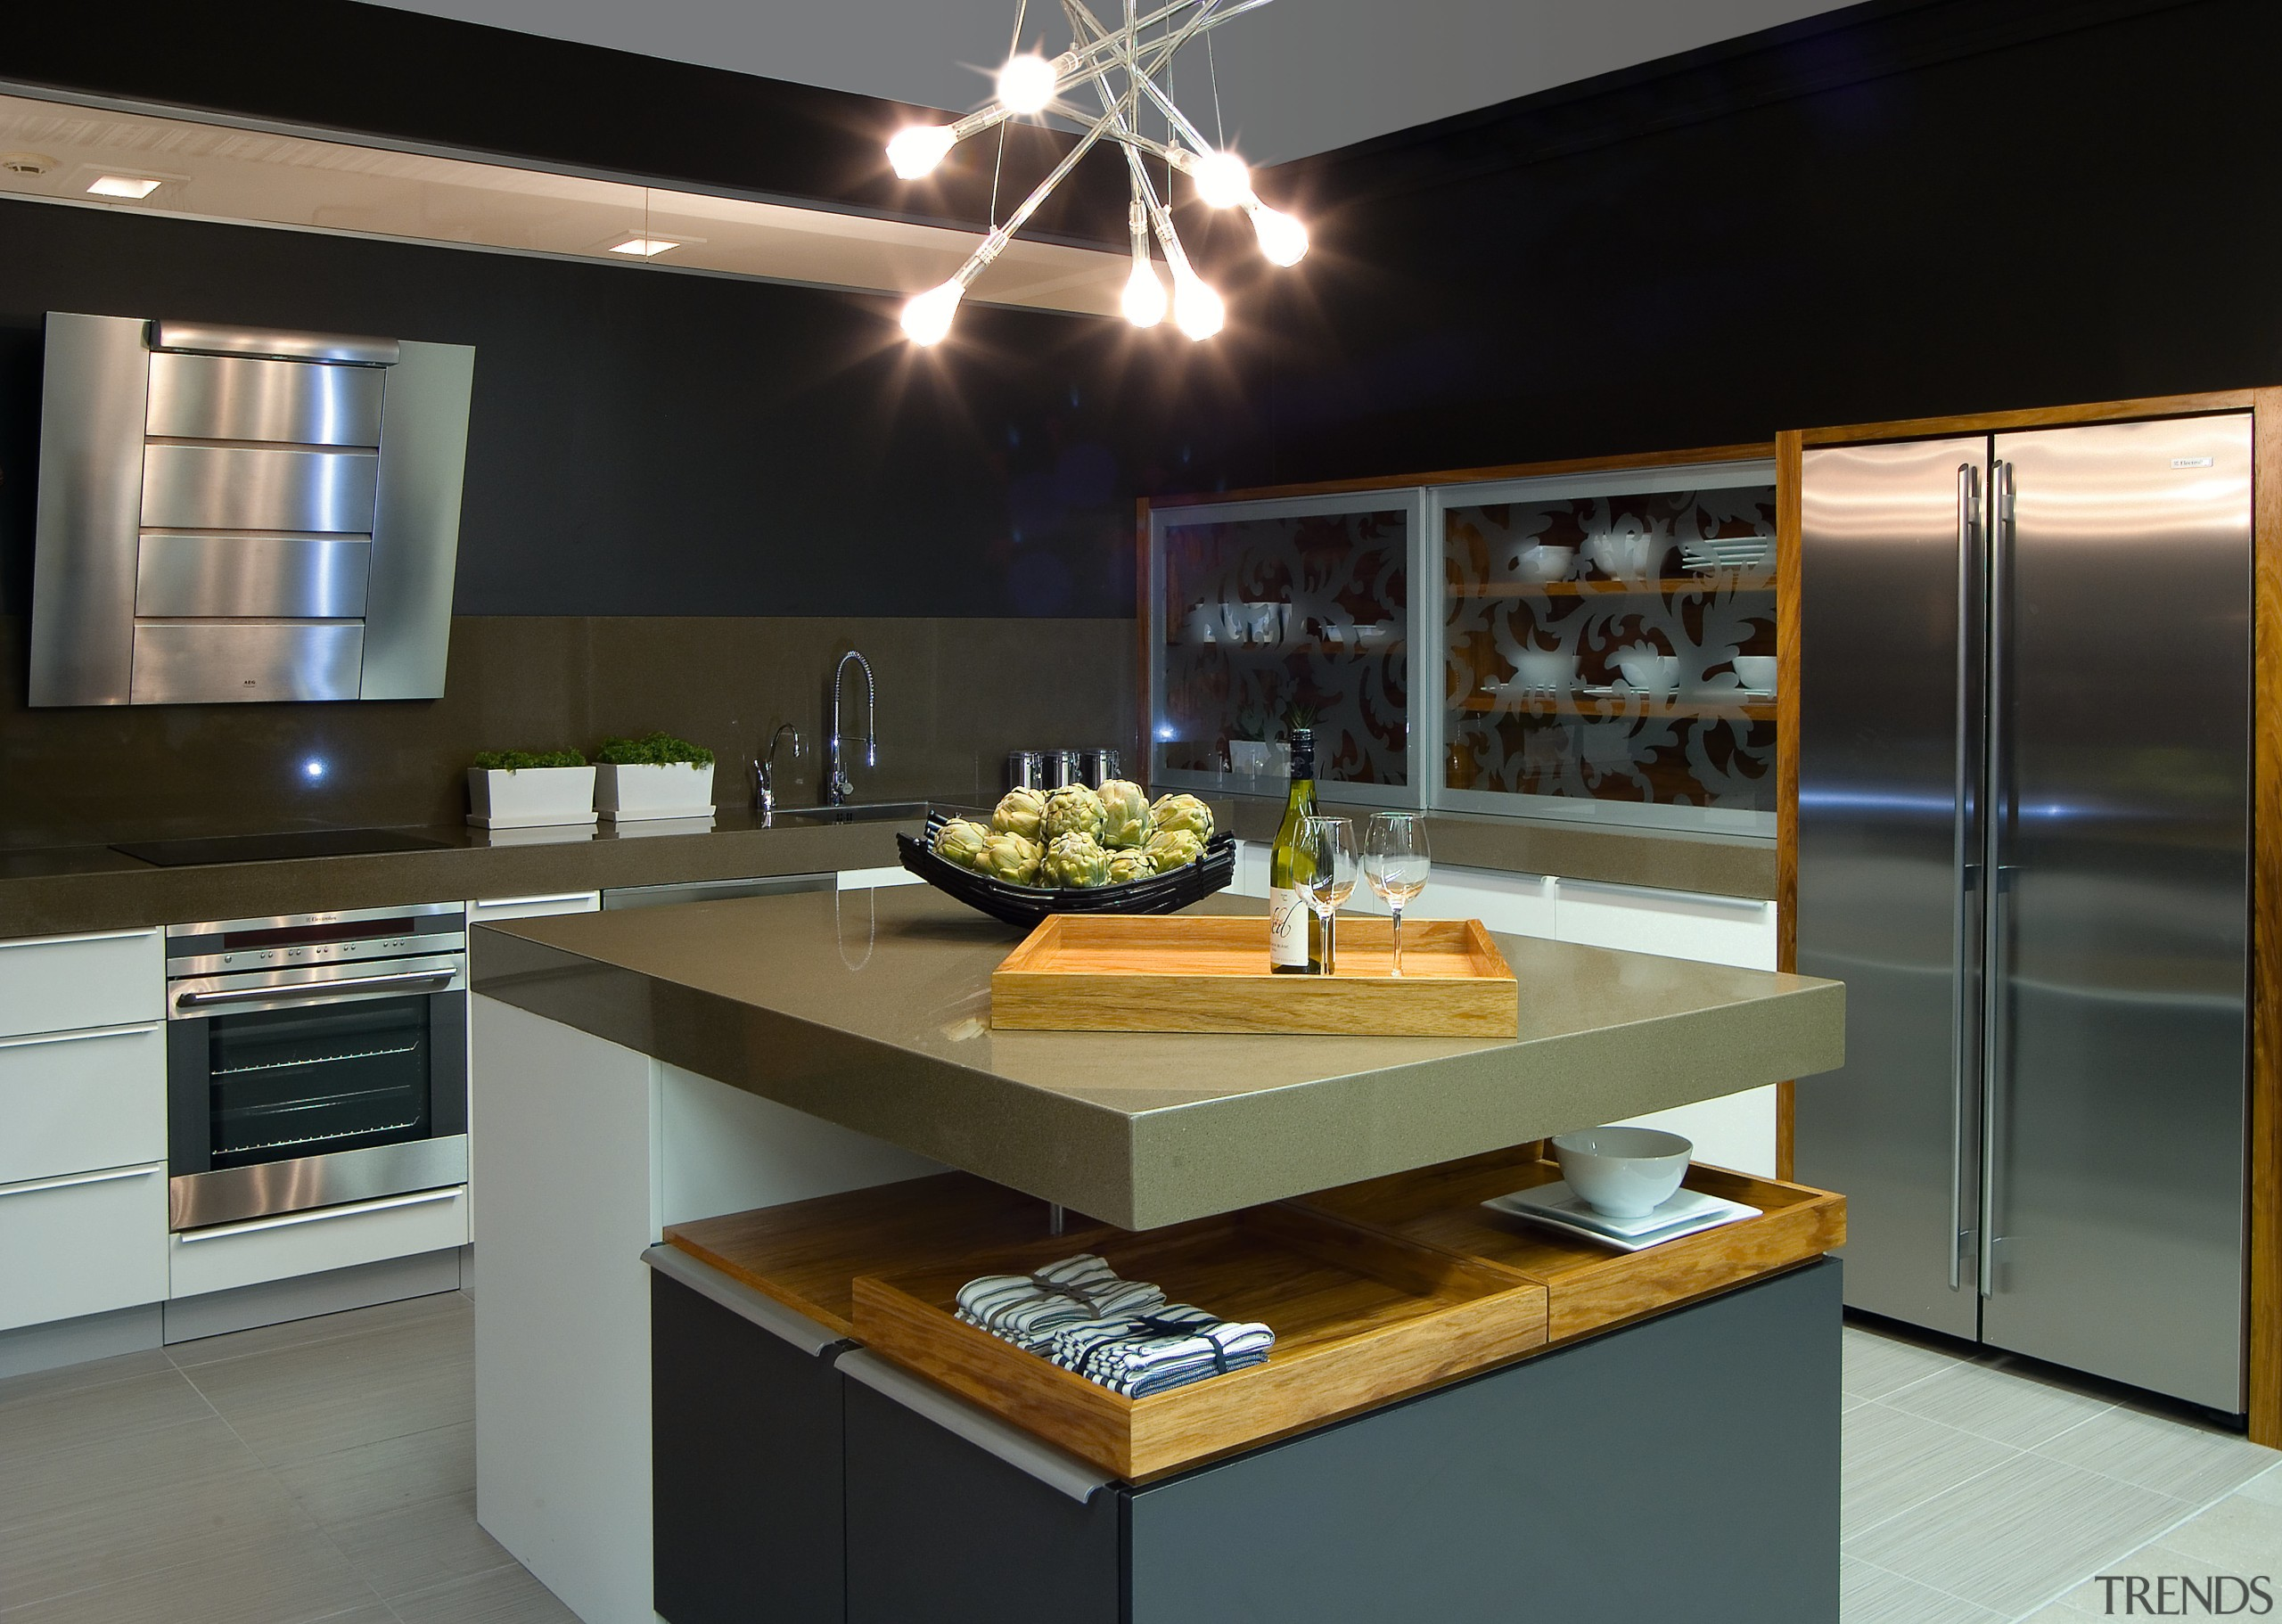 A view of these kitchens designed by Yellowfox countertop, interior design, kitchen, black, gray